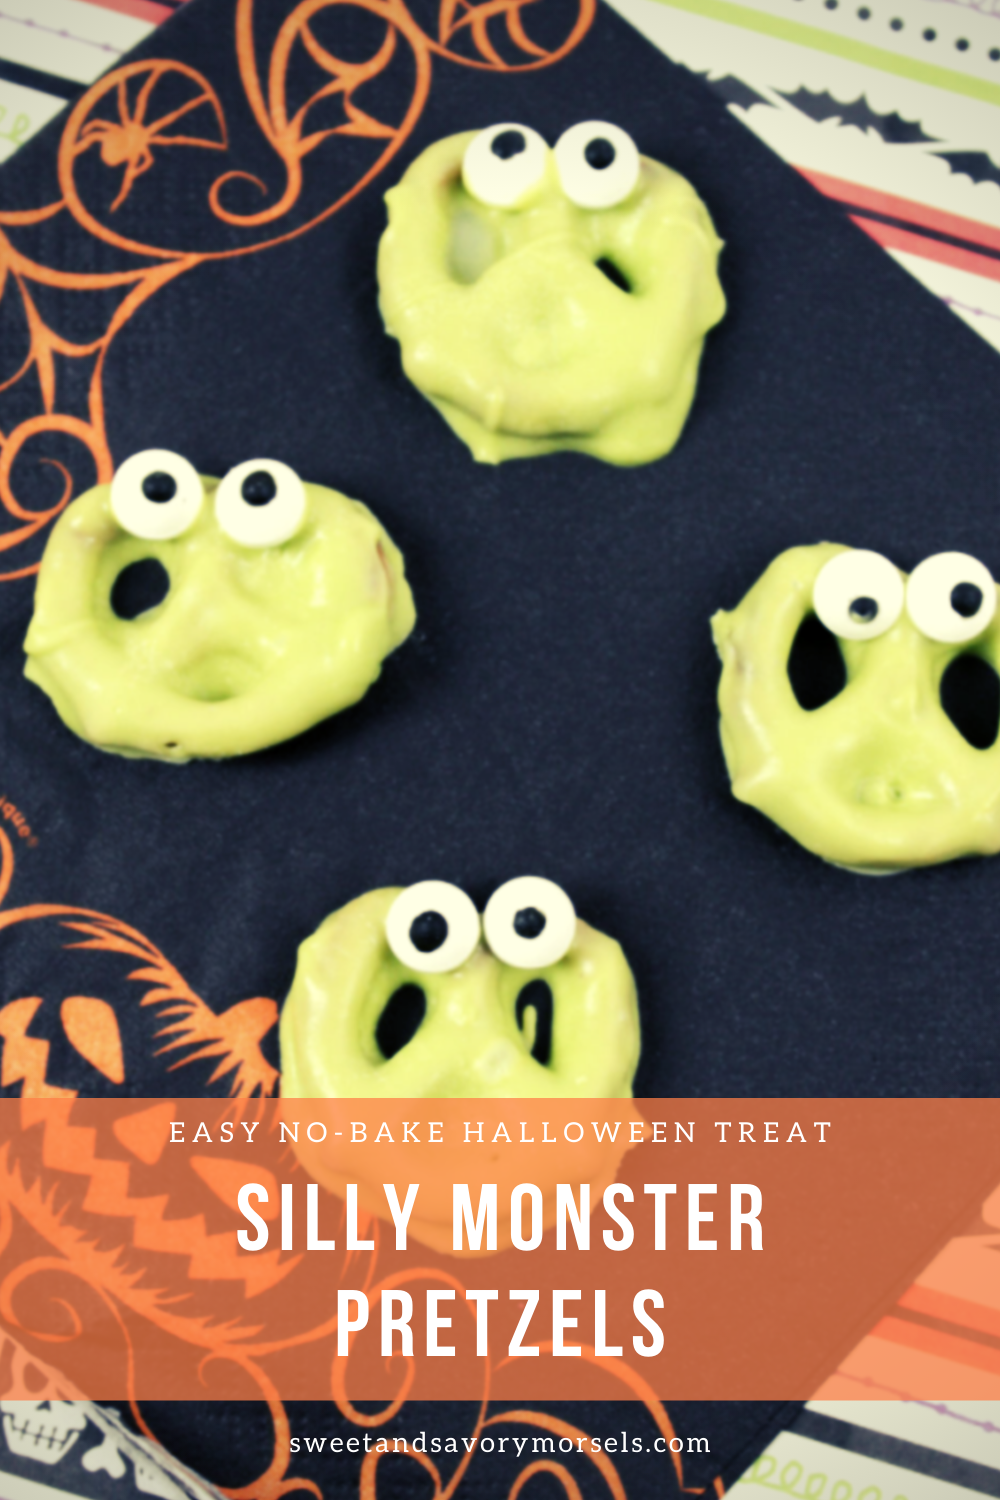 Silly Monster Pretzels are a classic fun treat that's sweet and salty and just plain silly! #sweetandsavorymorsels #Halloween